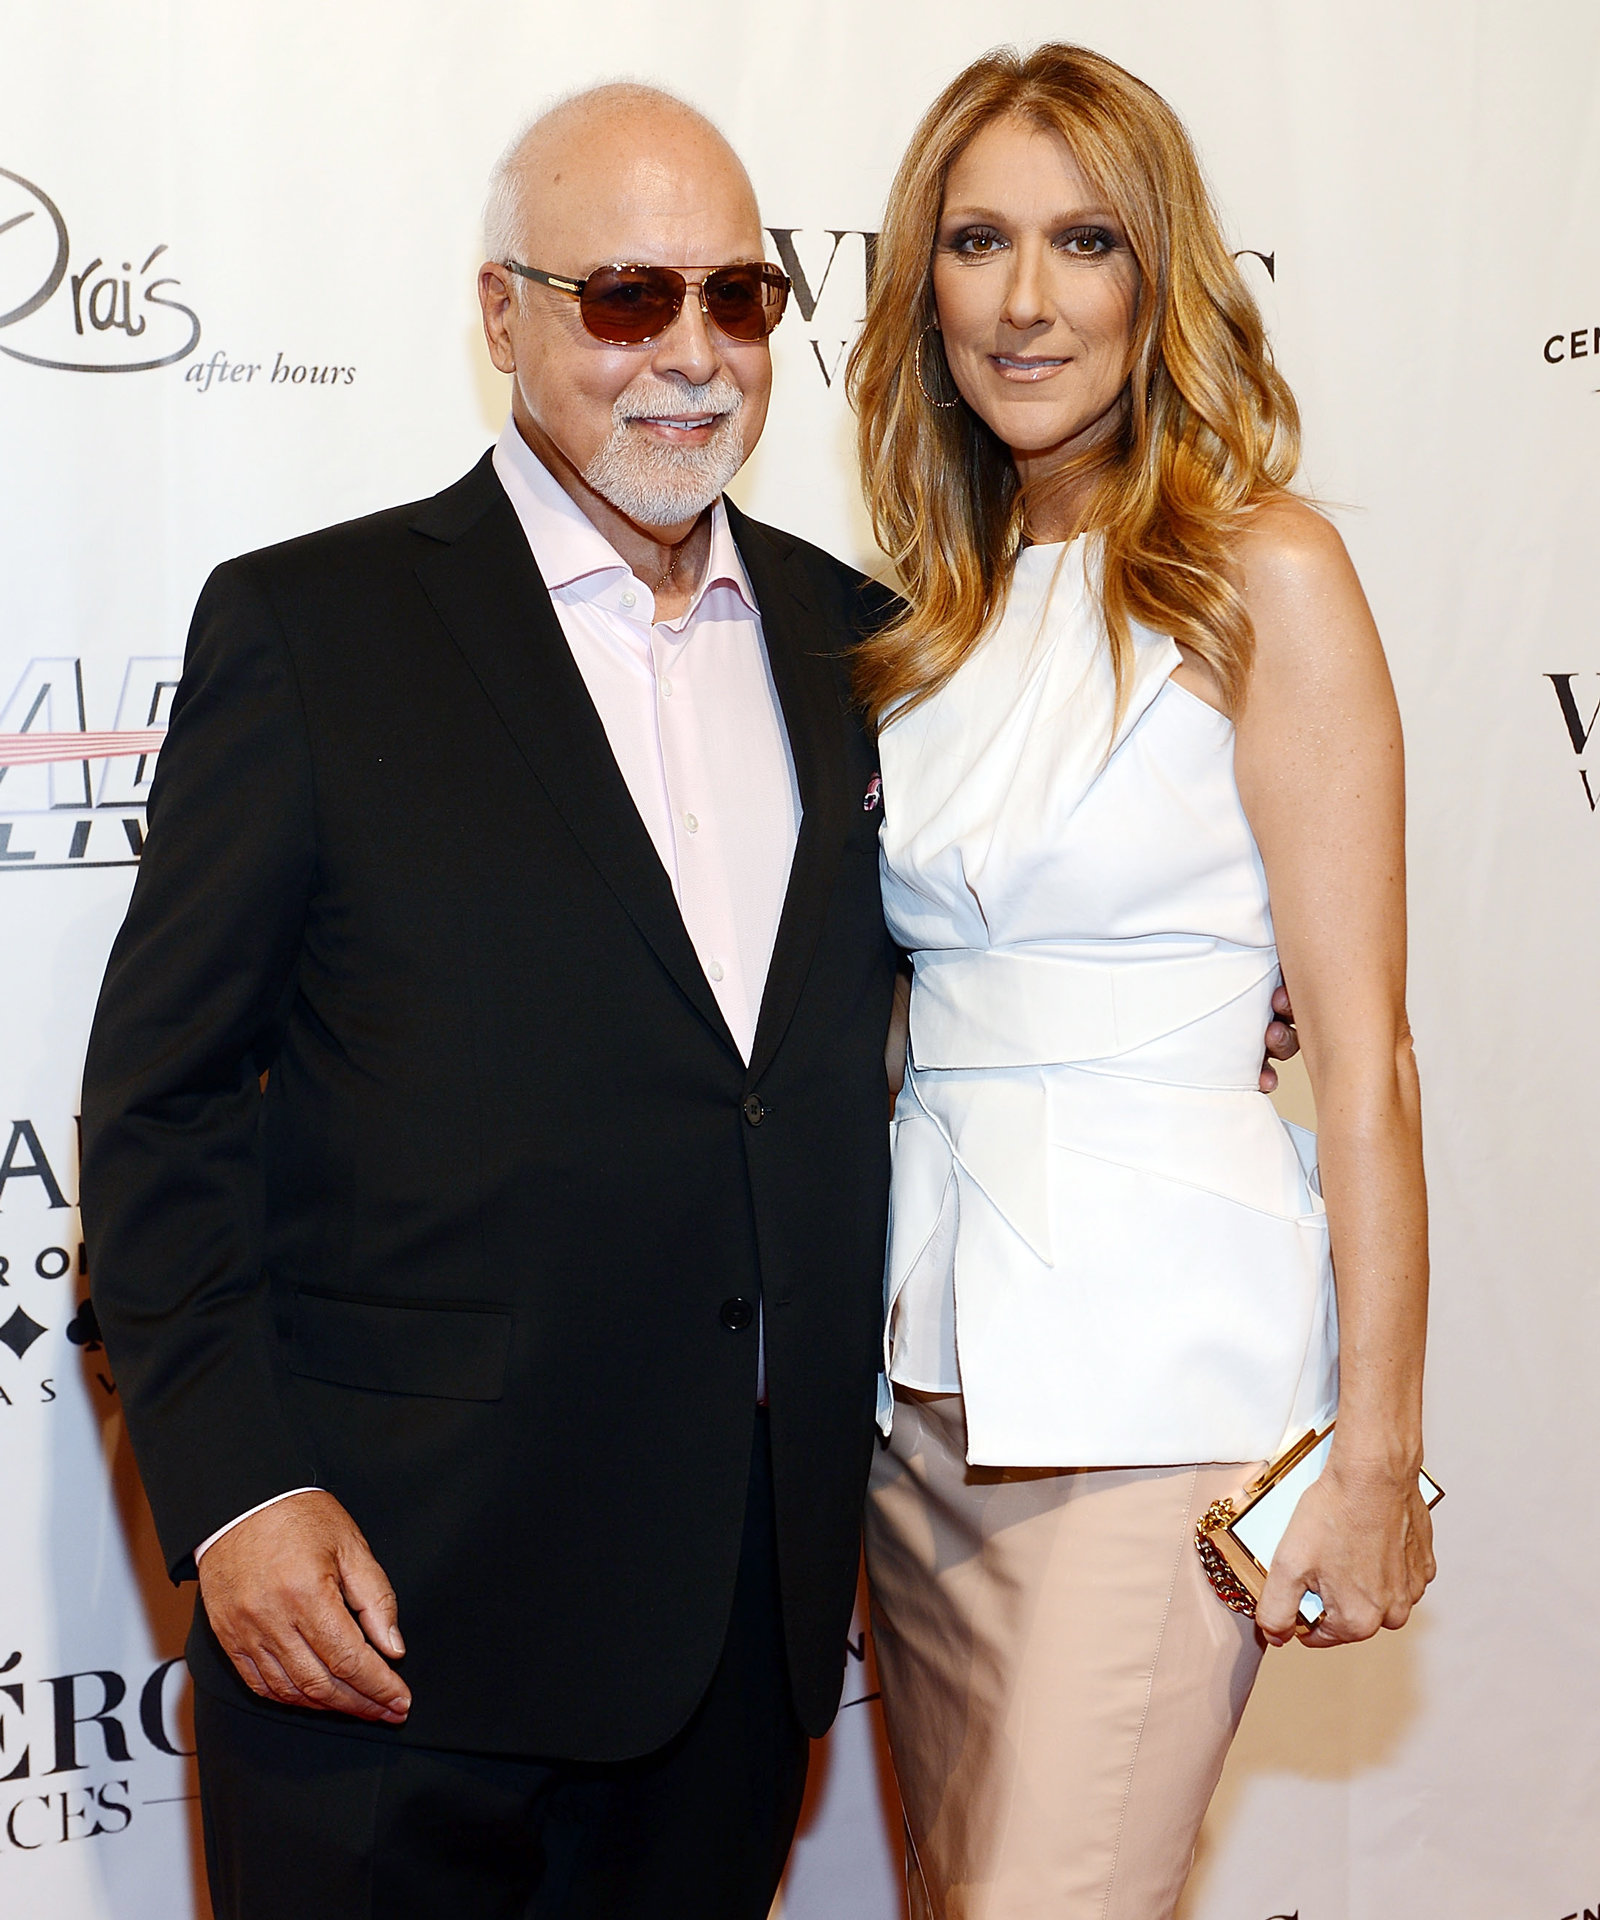 Celine Dion and Rene Embed